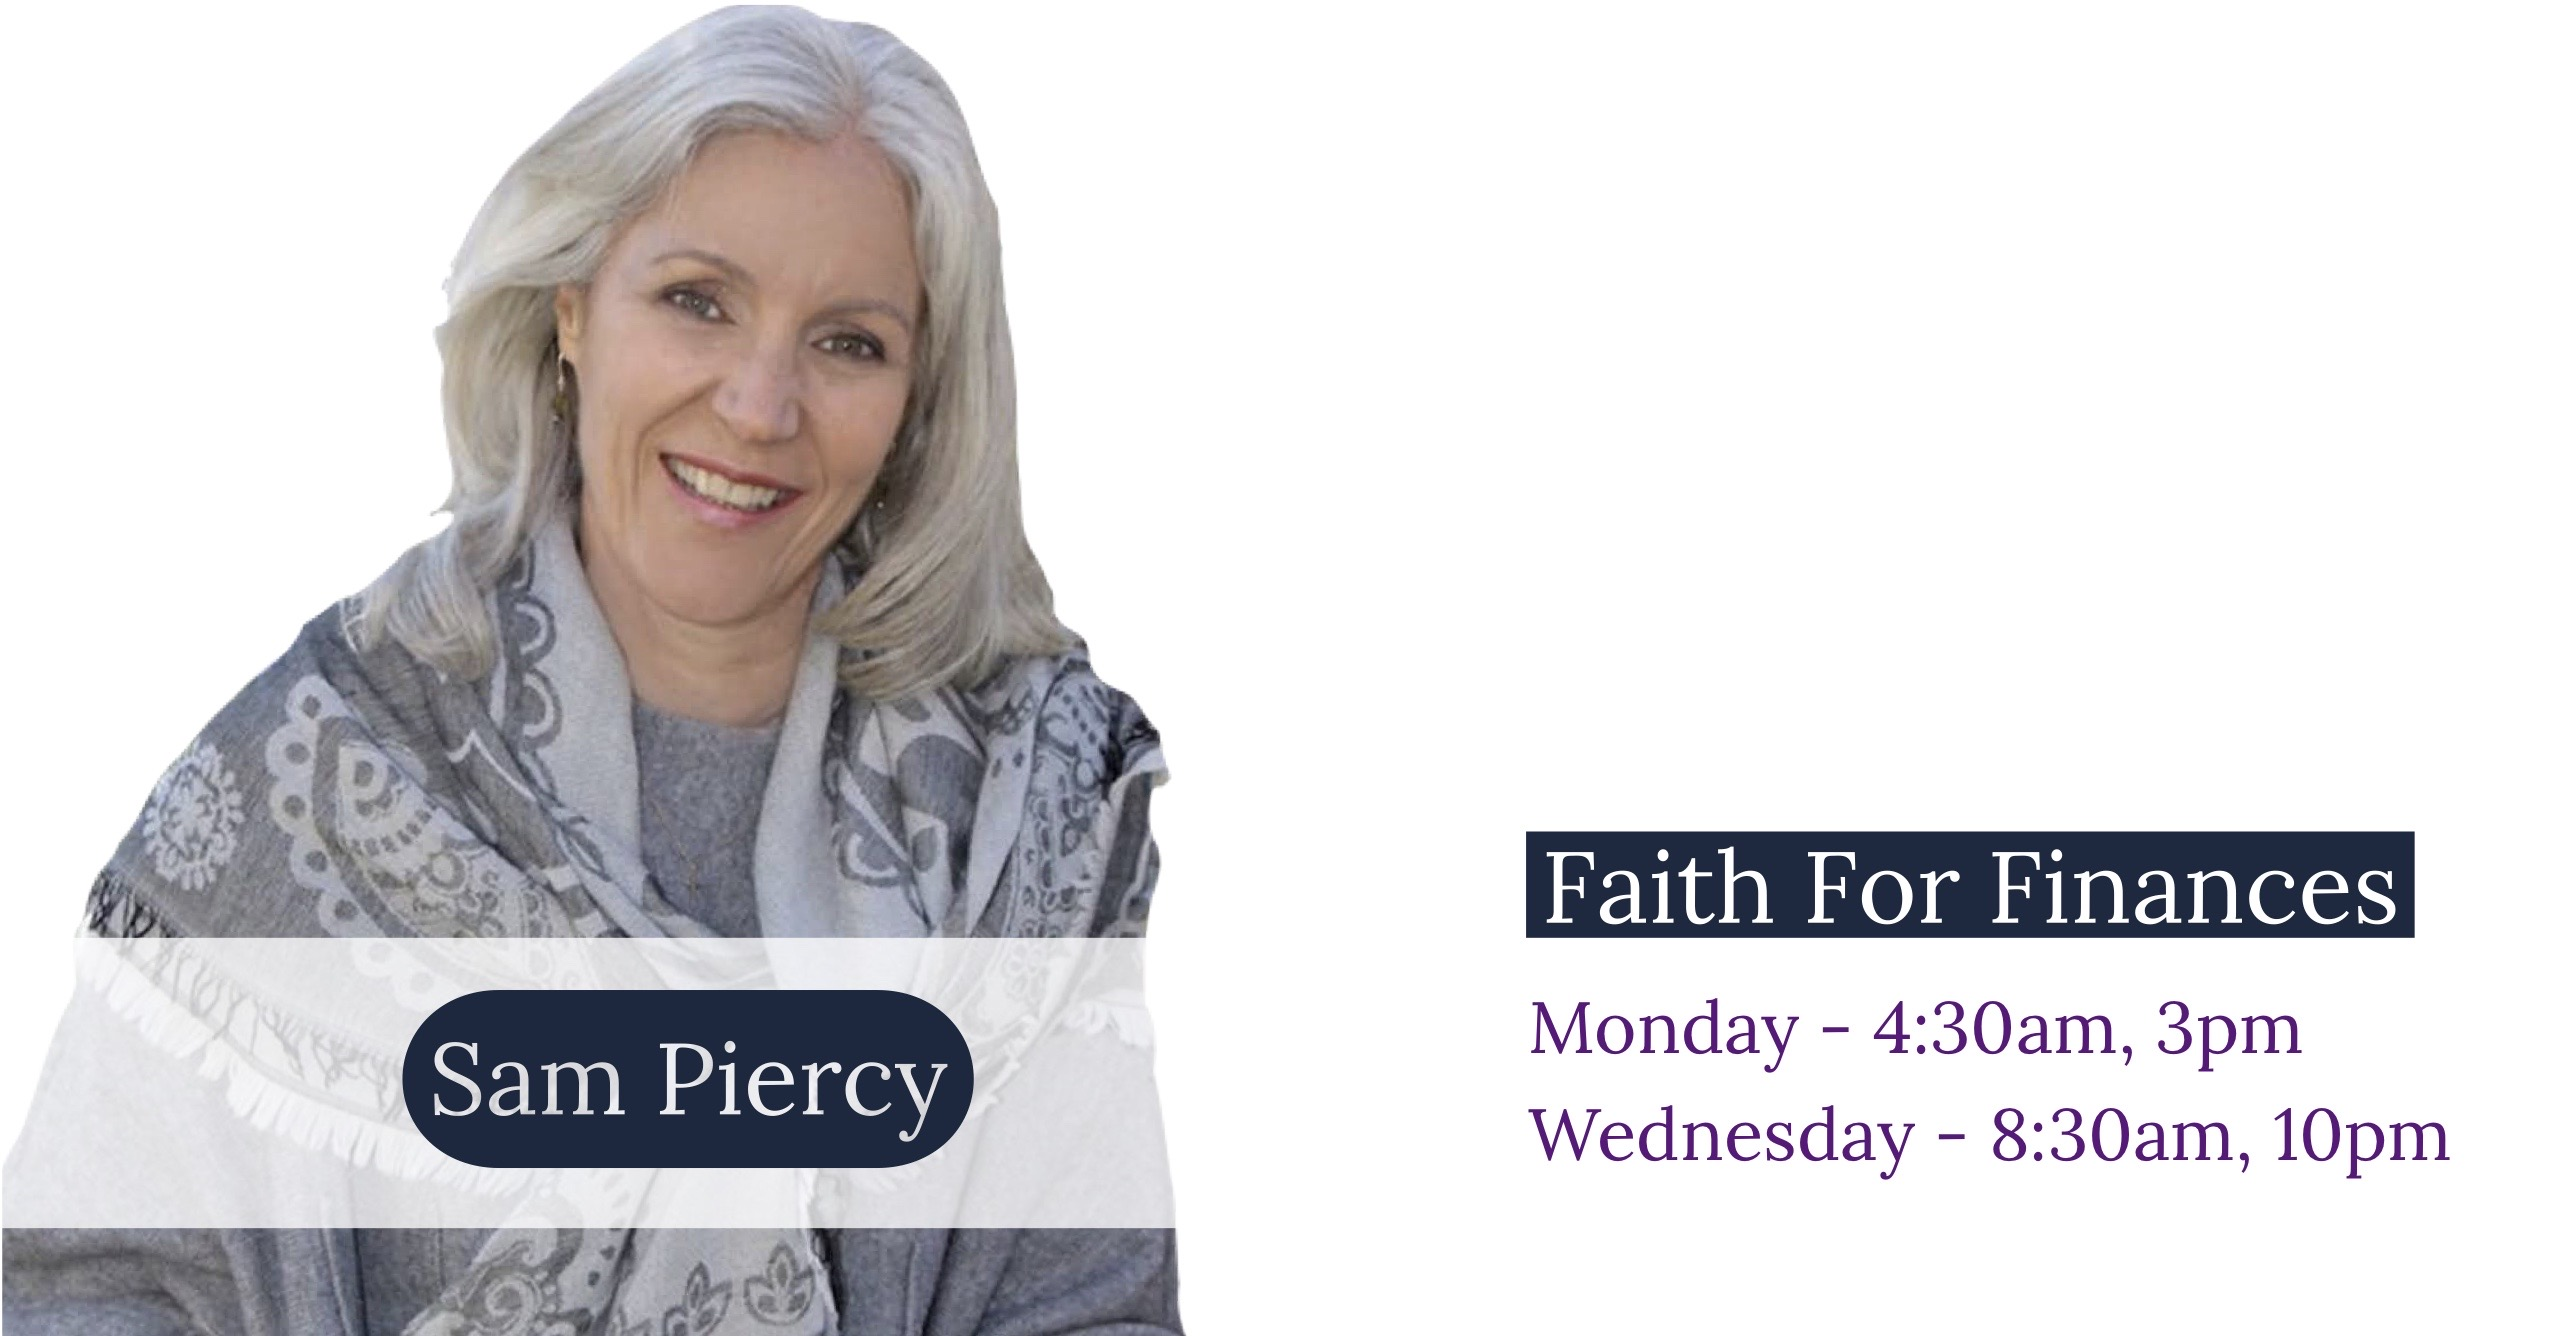 Faith For Finances - Sam Piercy